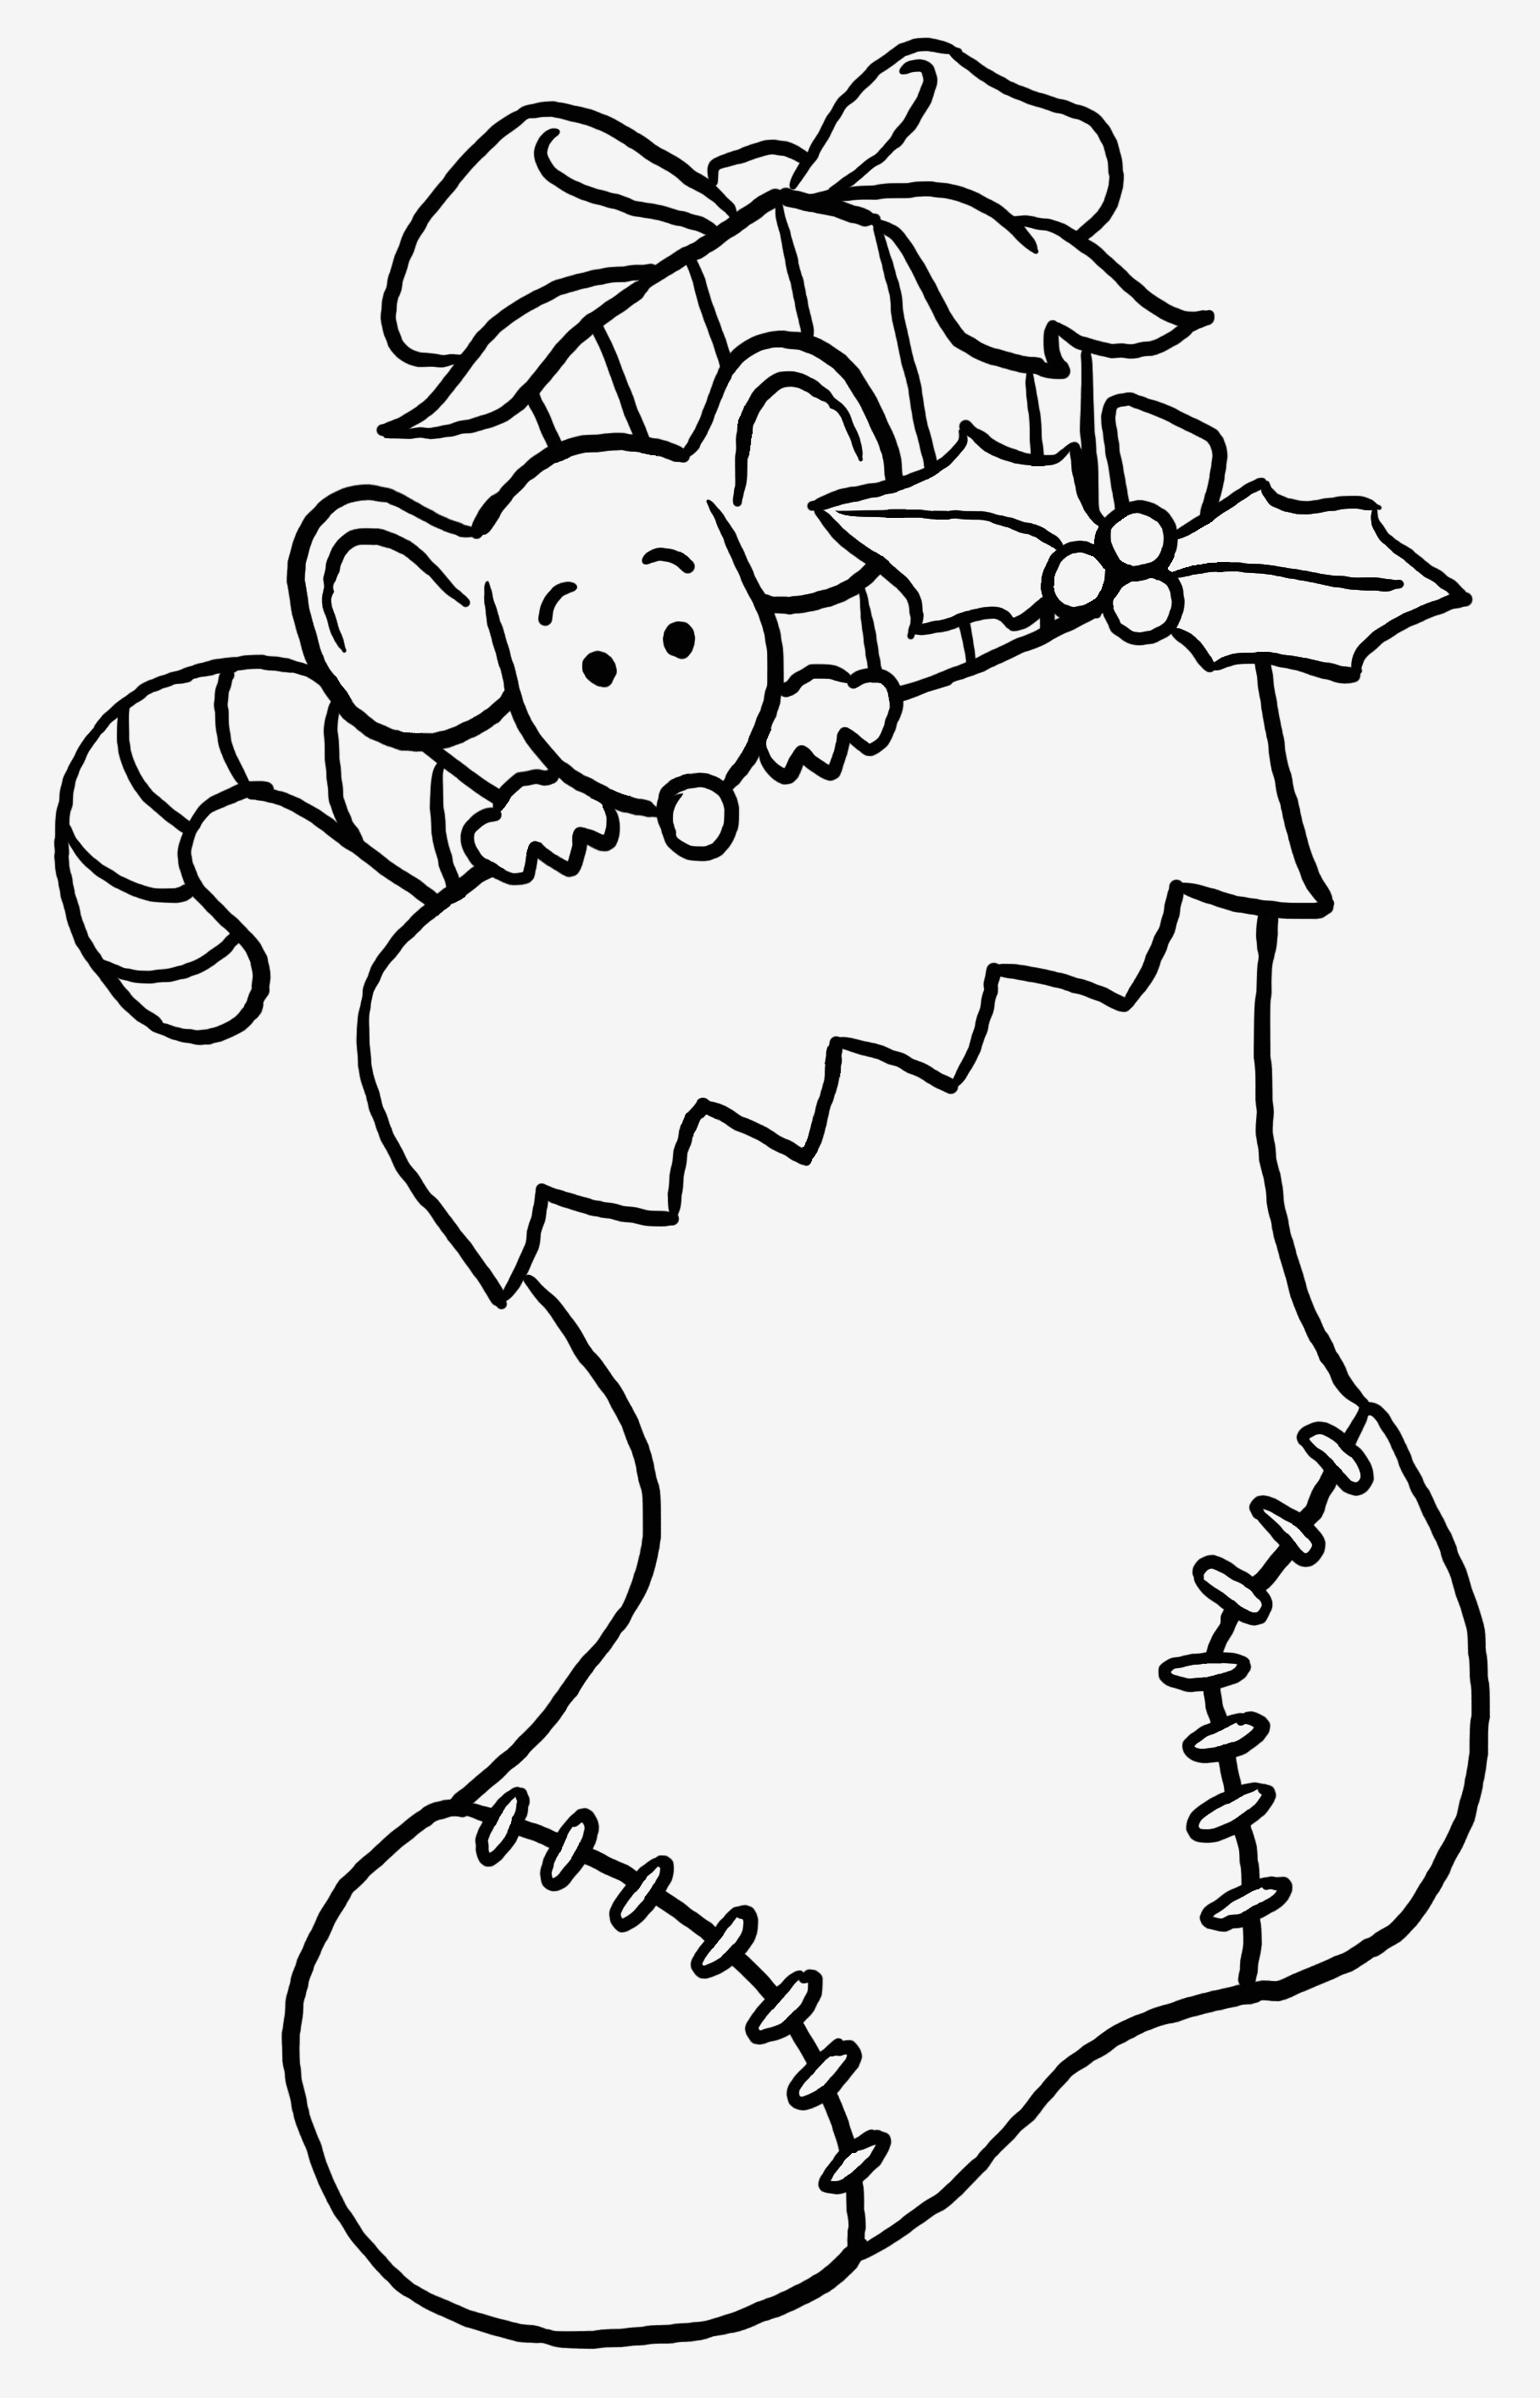 Coloring Pages: Easy Coloring Christmas Printable For Kids Simple - Free Printable Christmas Cards To Color